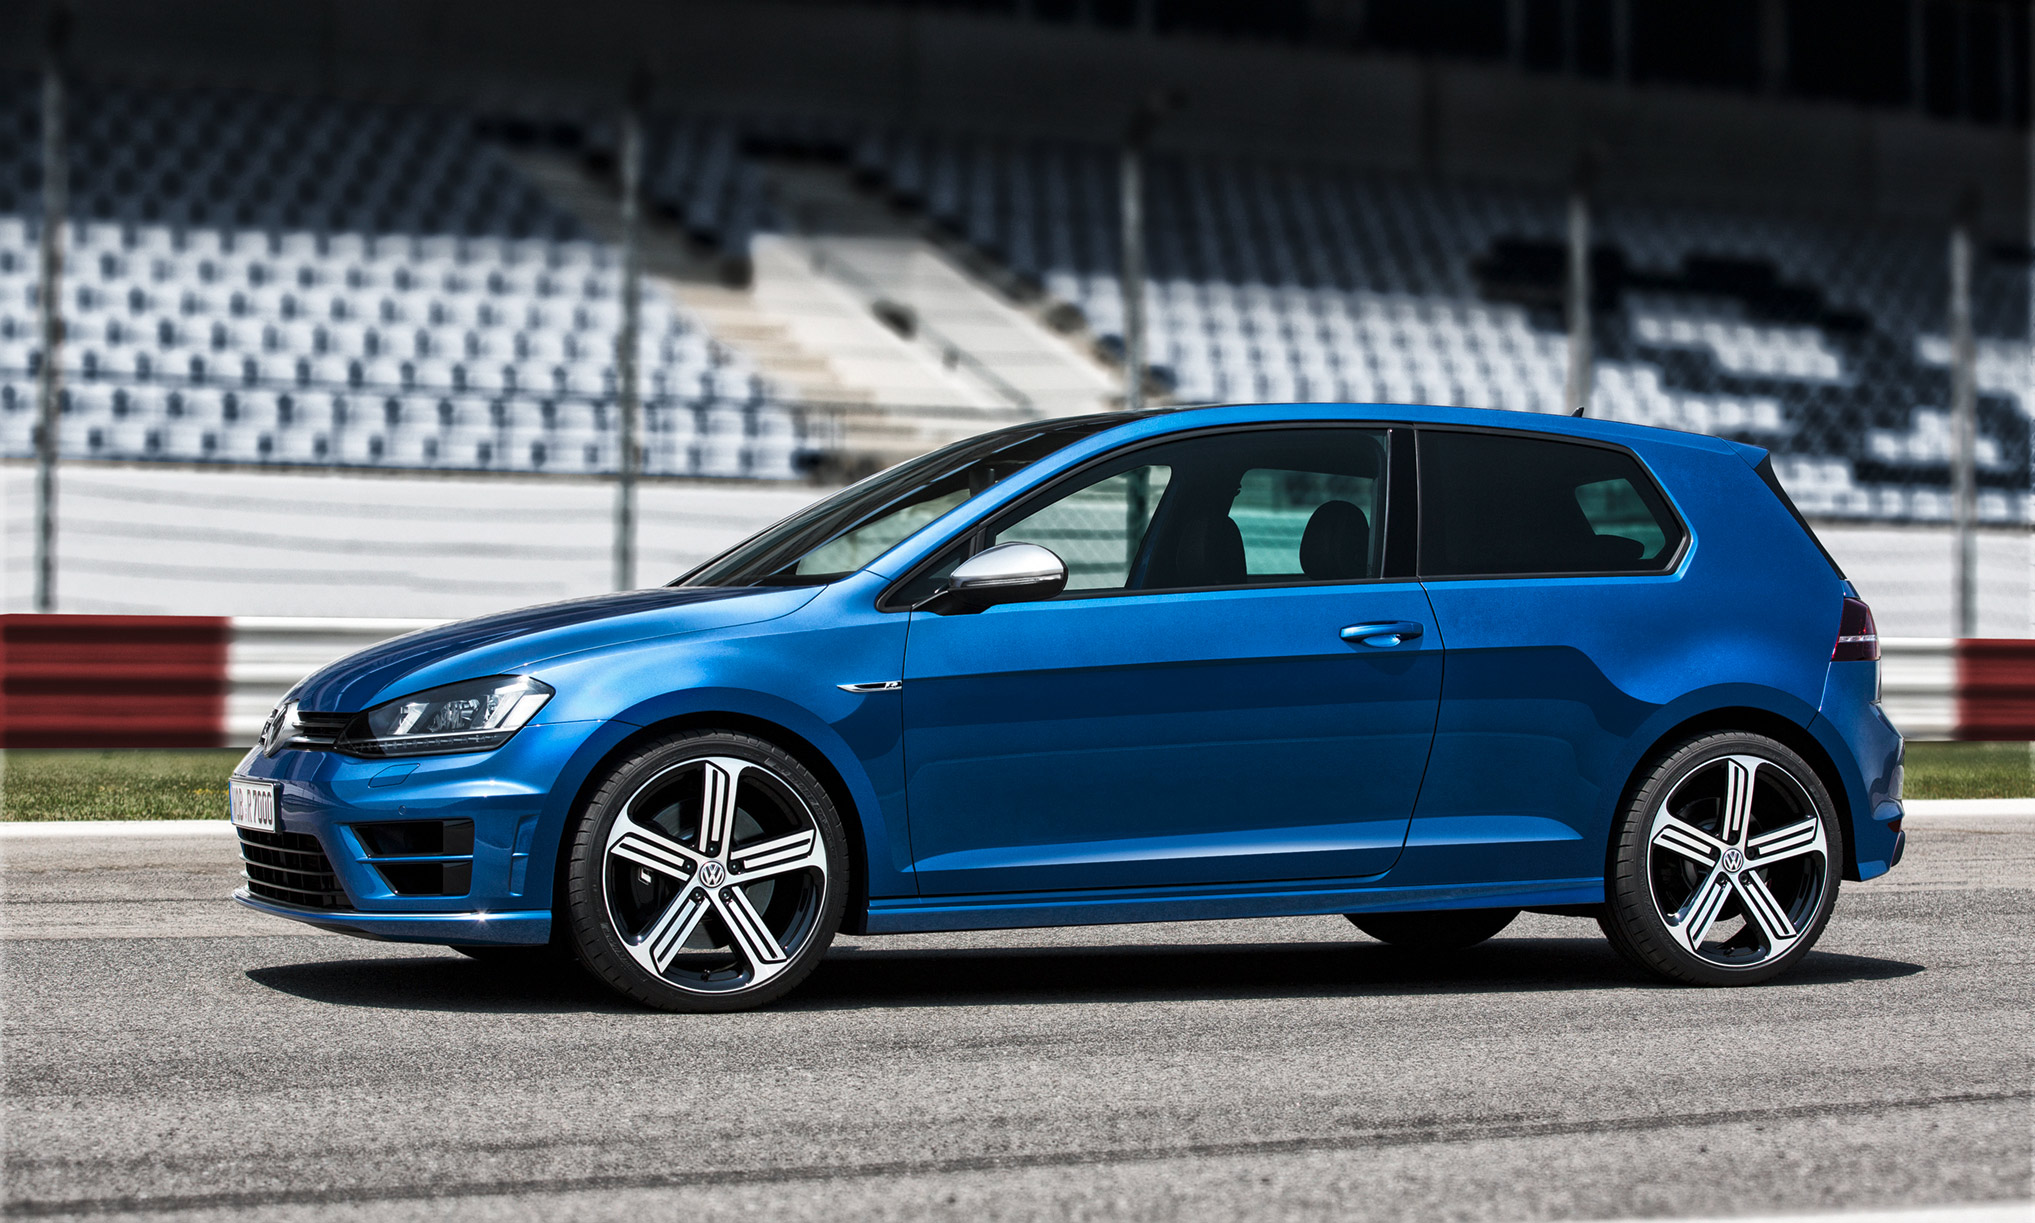 volkswagen-golf-7-r-first-drive-vwvortex-004